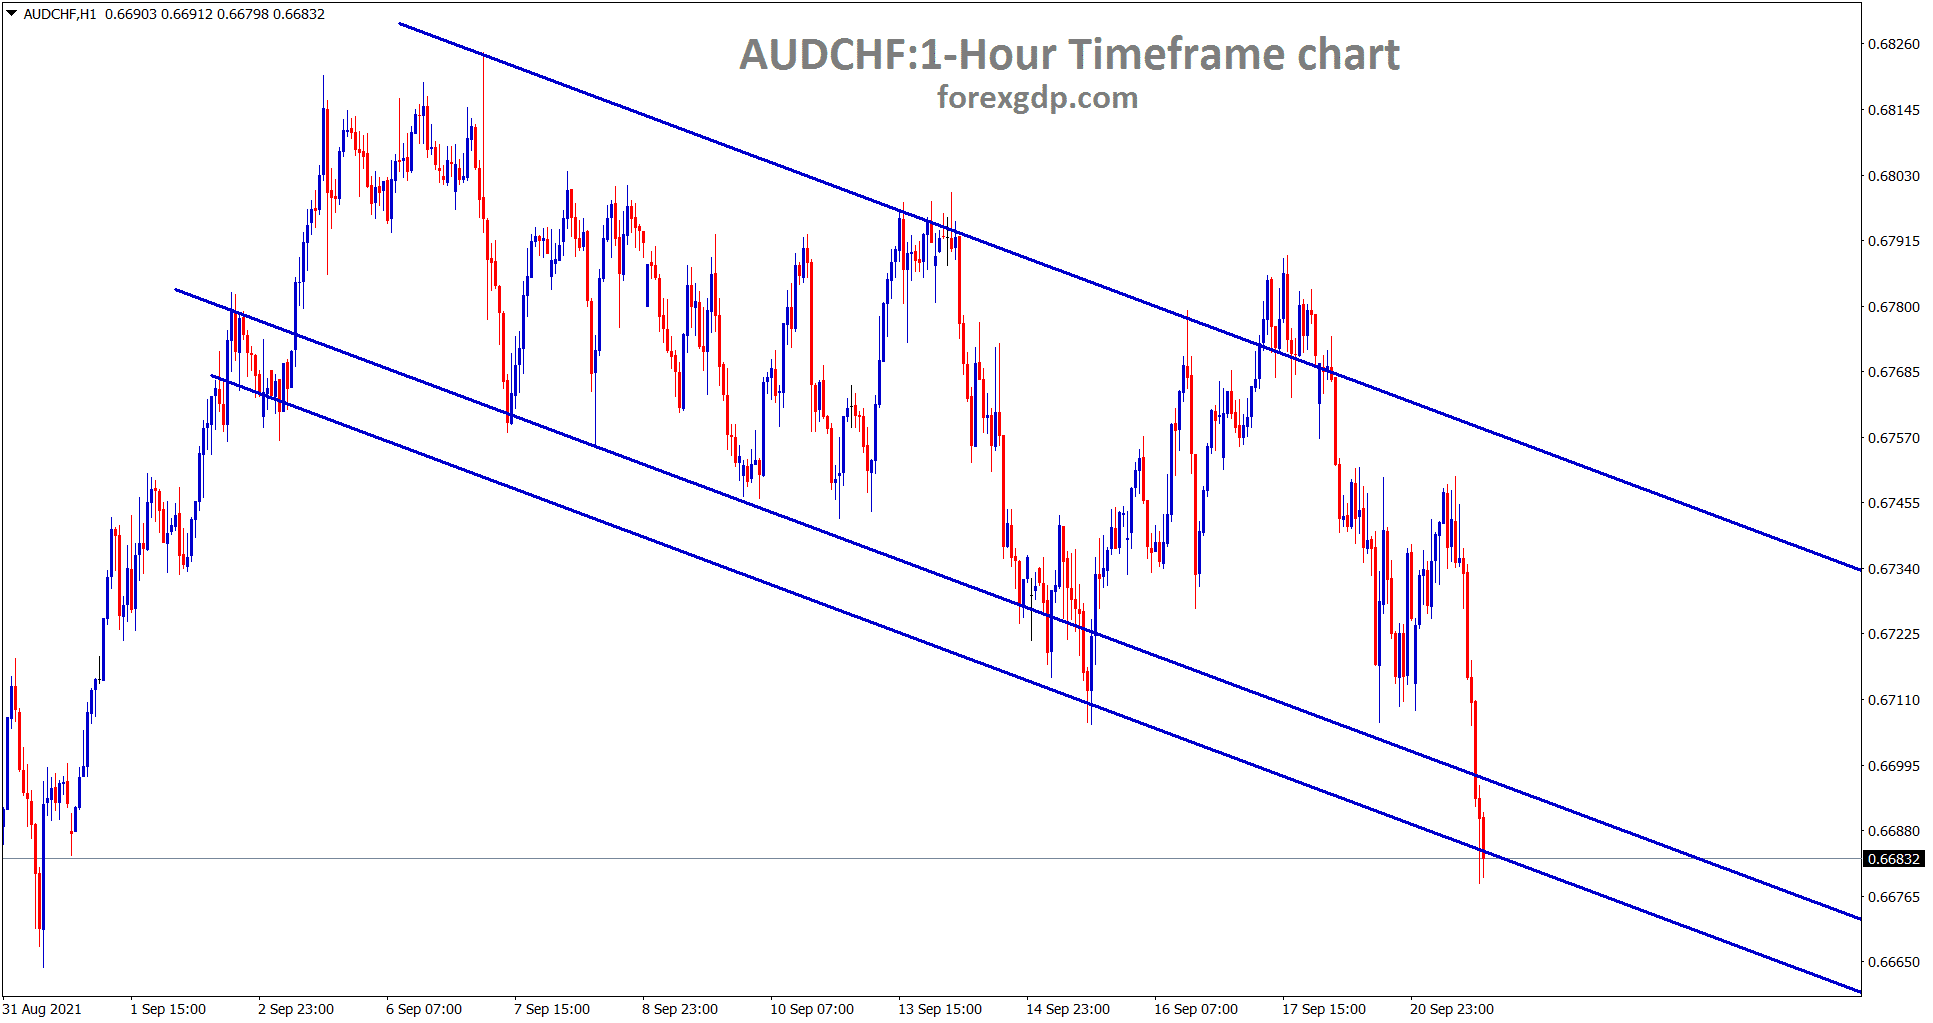 AUDCHF is moving in a clear descending channel